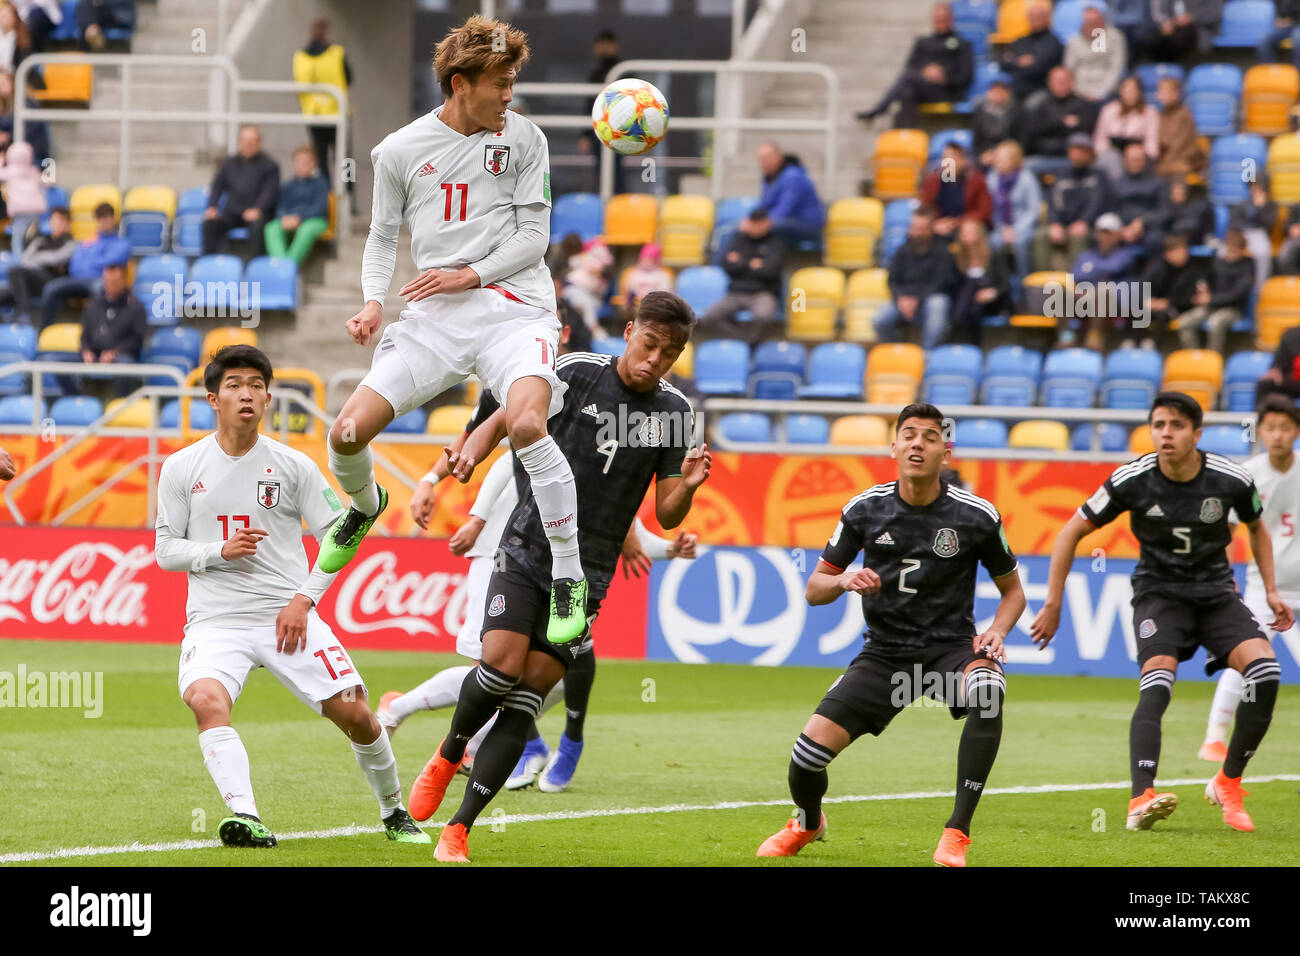 Gdynia Stadium, Gdynia, Poland - 26th May, 2019: Taisei Miyashiro, Kyosuke Tagawa from Japan and Efrain Orona, Kevin Alvarez, Naelson Cardenas from Mexico are seen in action during FIFA U-20 World Cup match between Mexico and Japan (GROUP B) in Gdynia. (Final score; Mexico 0:3 Japan) - Stock Image